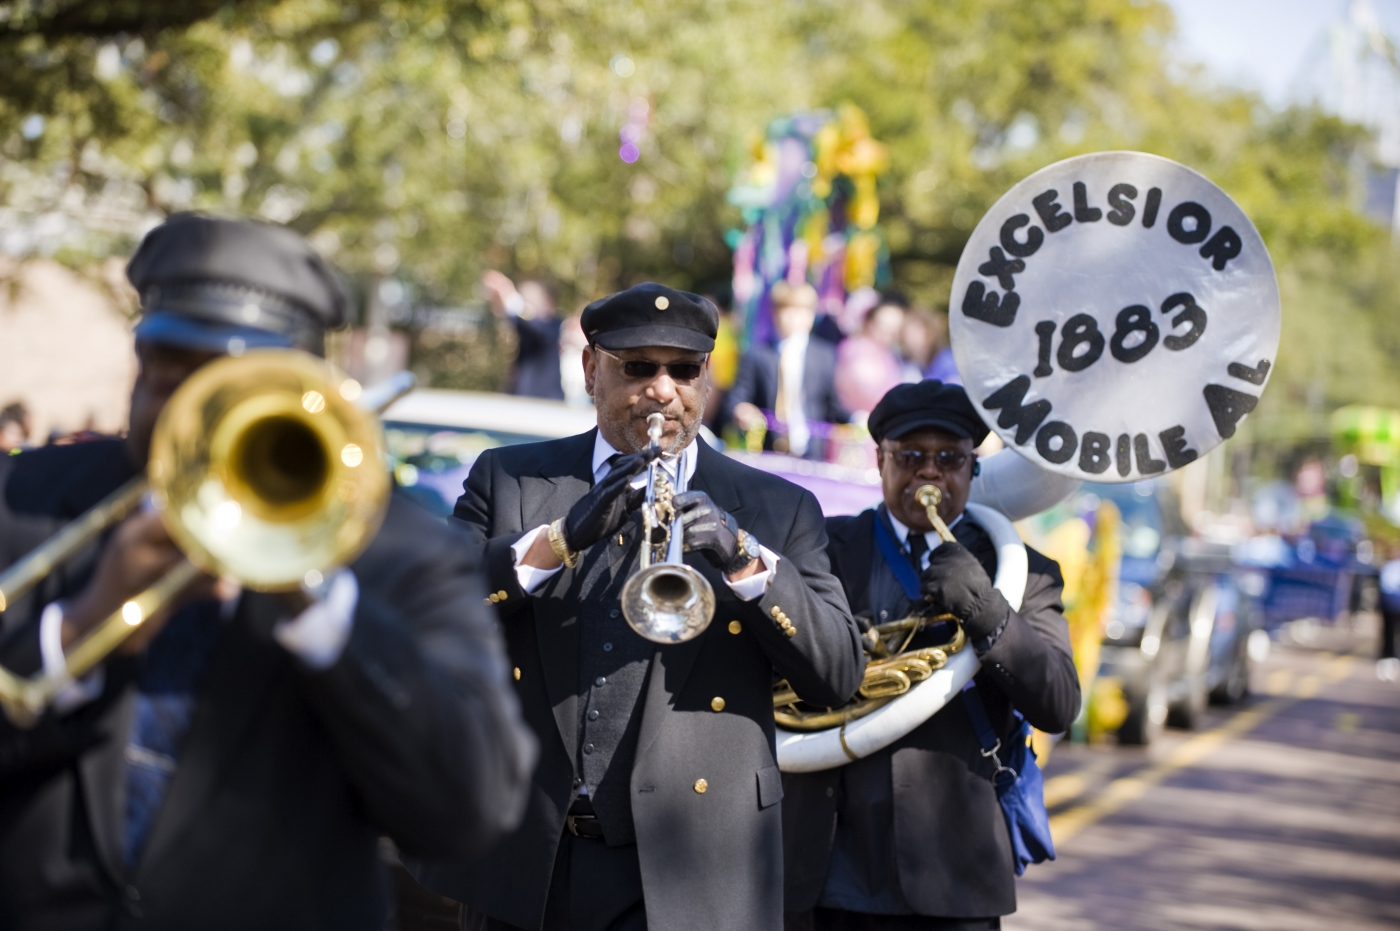 The Excelsior Band plays in a Mardi Gras parade in Mobile.